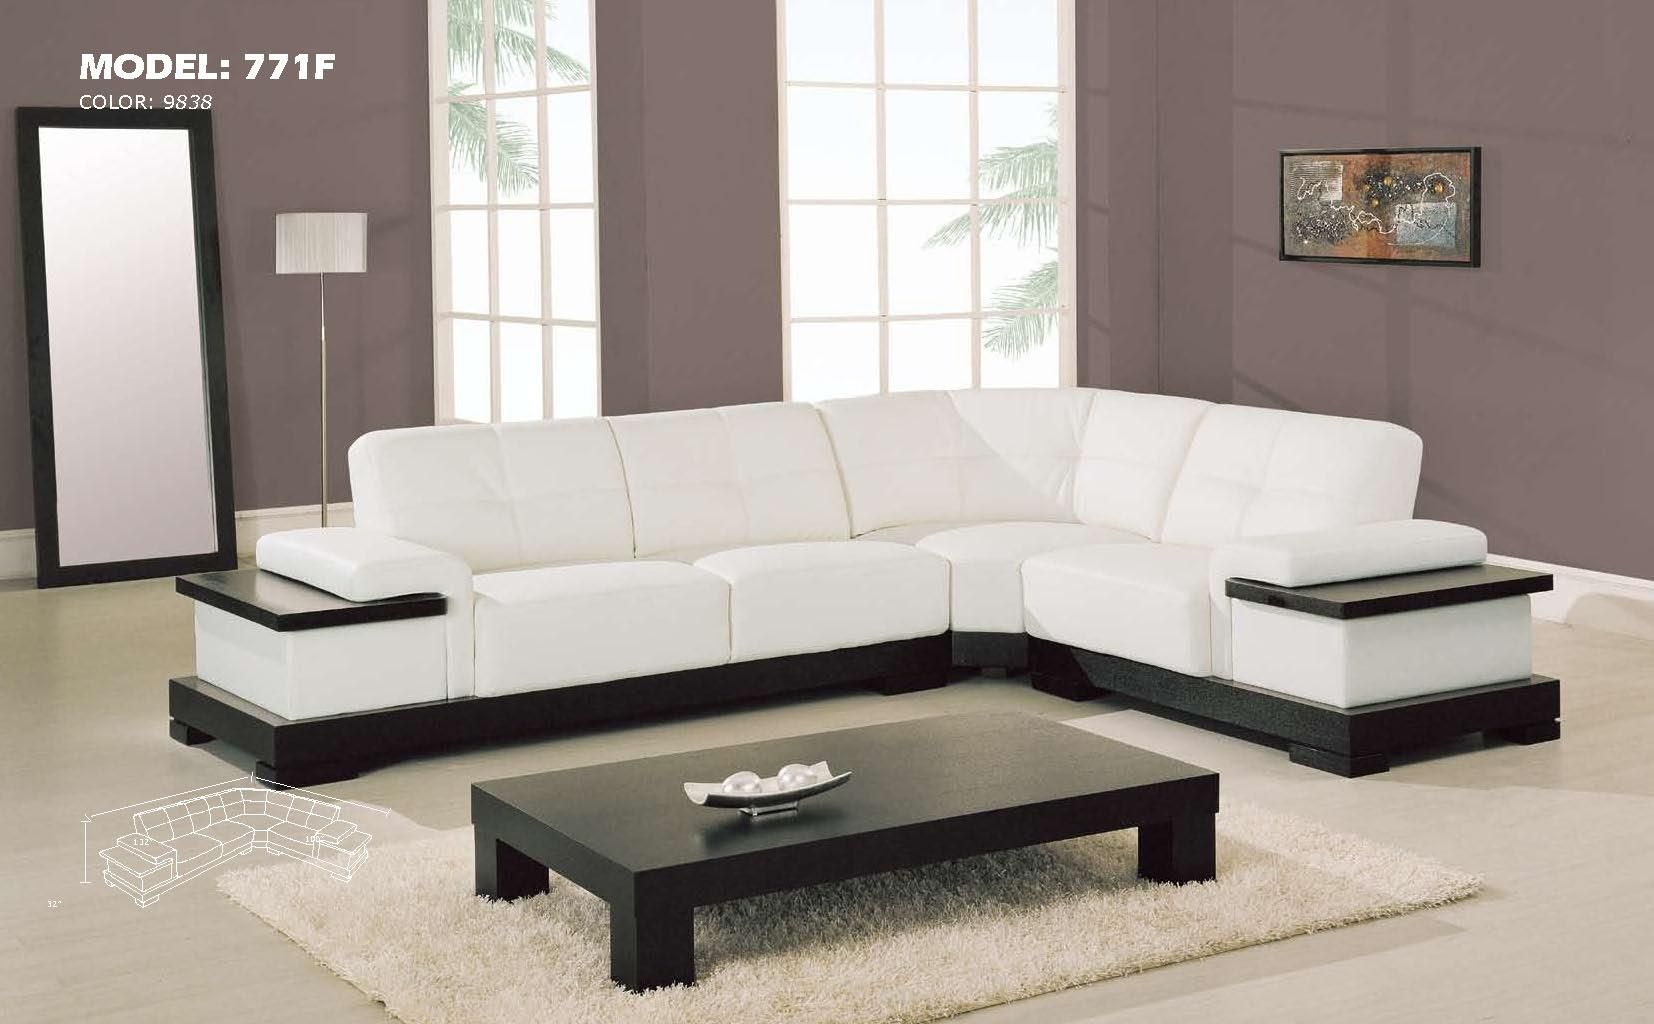 Contemporary White Leather 3pc Sectional Sofa Design De Sofa Conjunto Sala De Estar Sofas Modulares De Couro